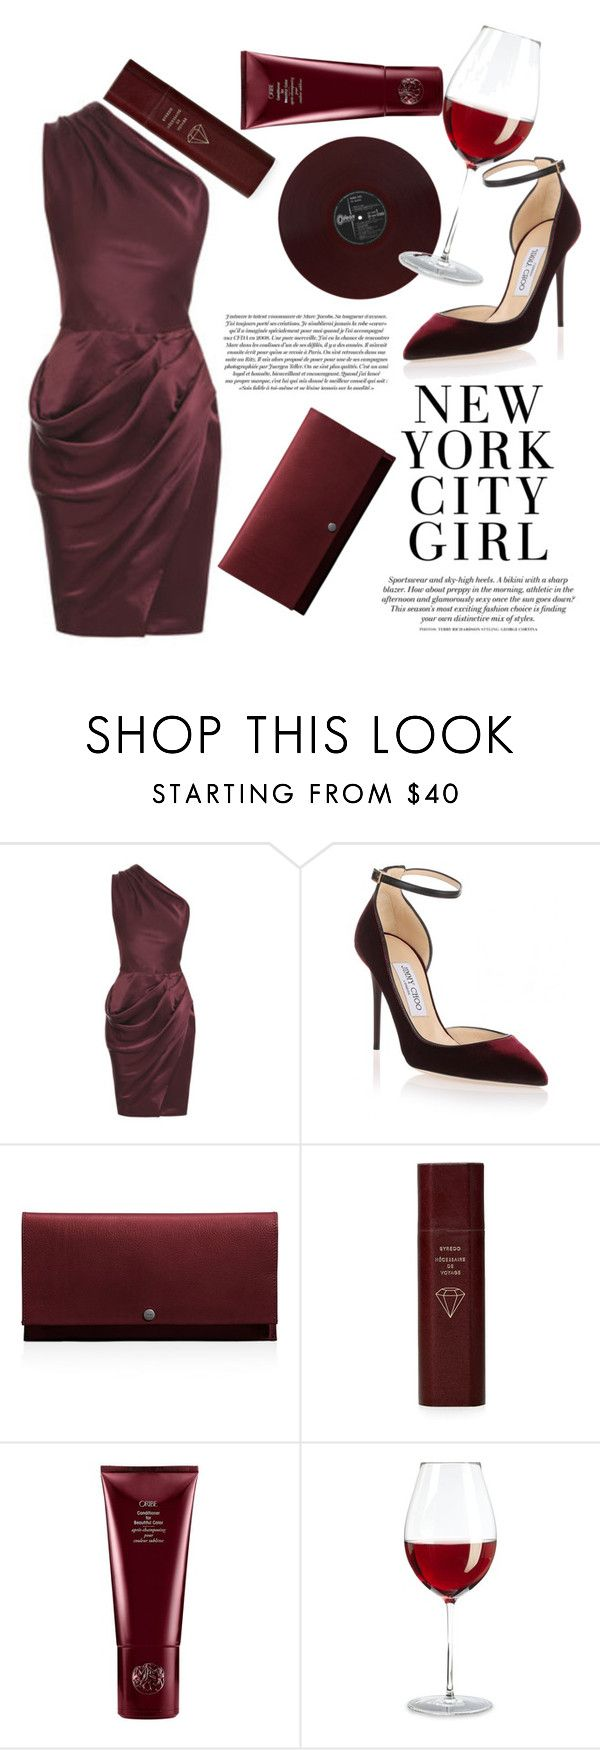 """Dinner date outfit inspiration"" by aisha-fitriyah ❤ liked on Polyvore featuring H&M, Roksanda Ilincic, Jimmy Choo, Shinola, Byredo, Marc Jacobs and Oribe"